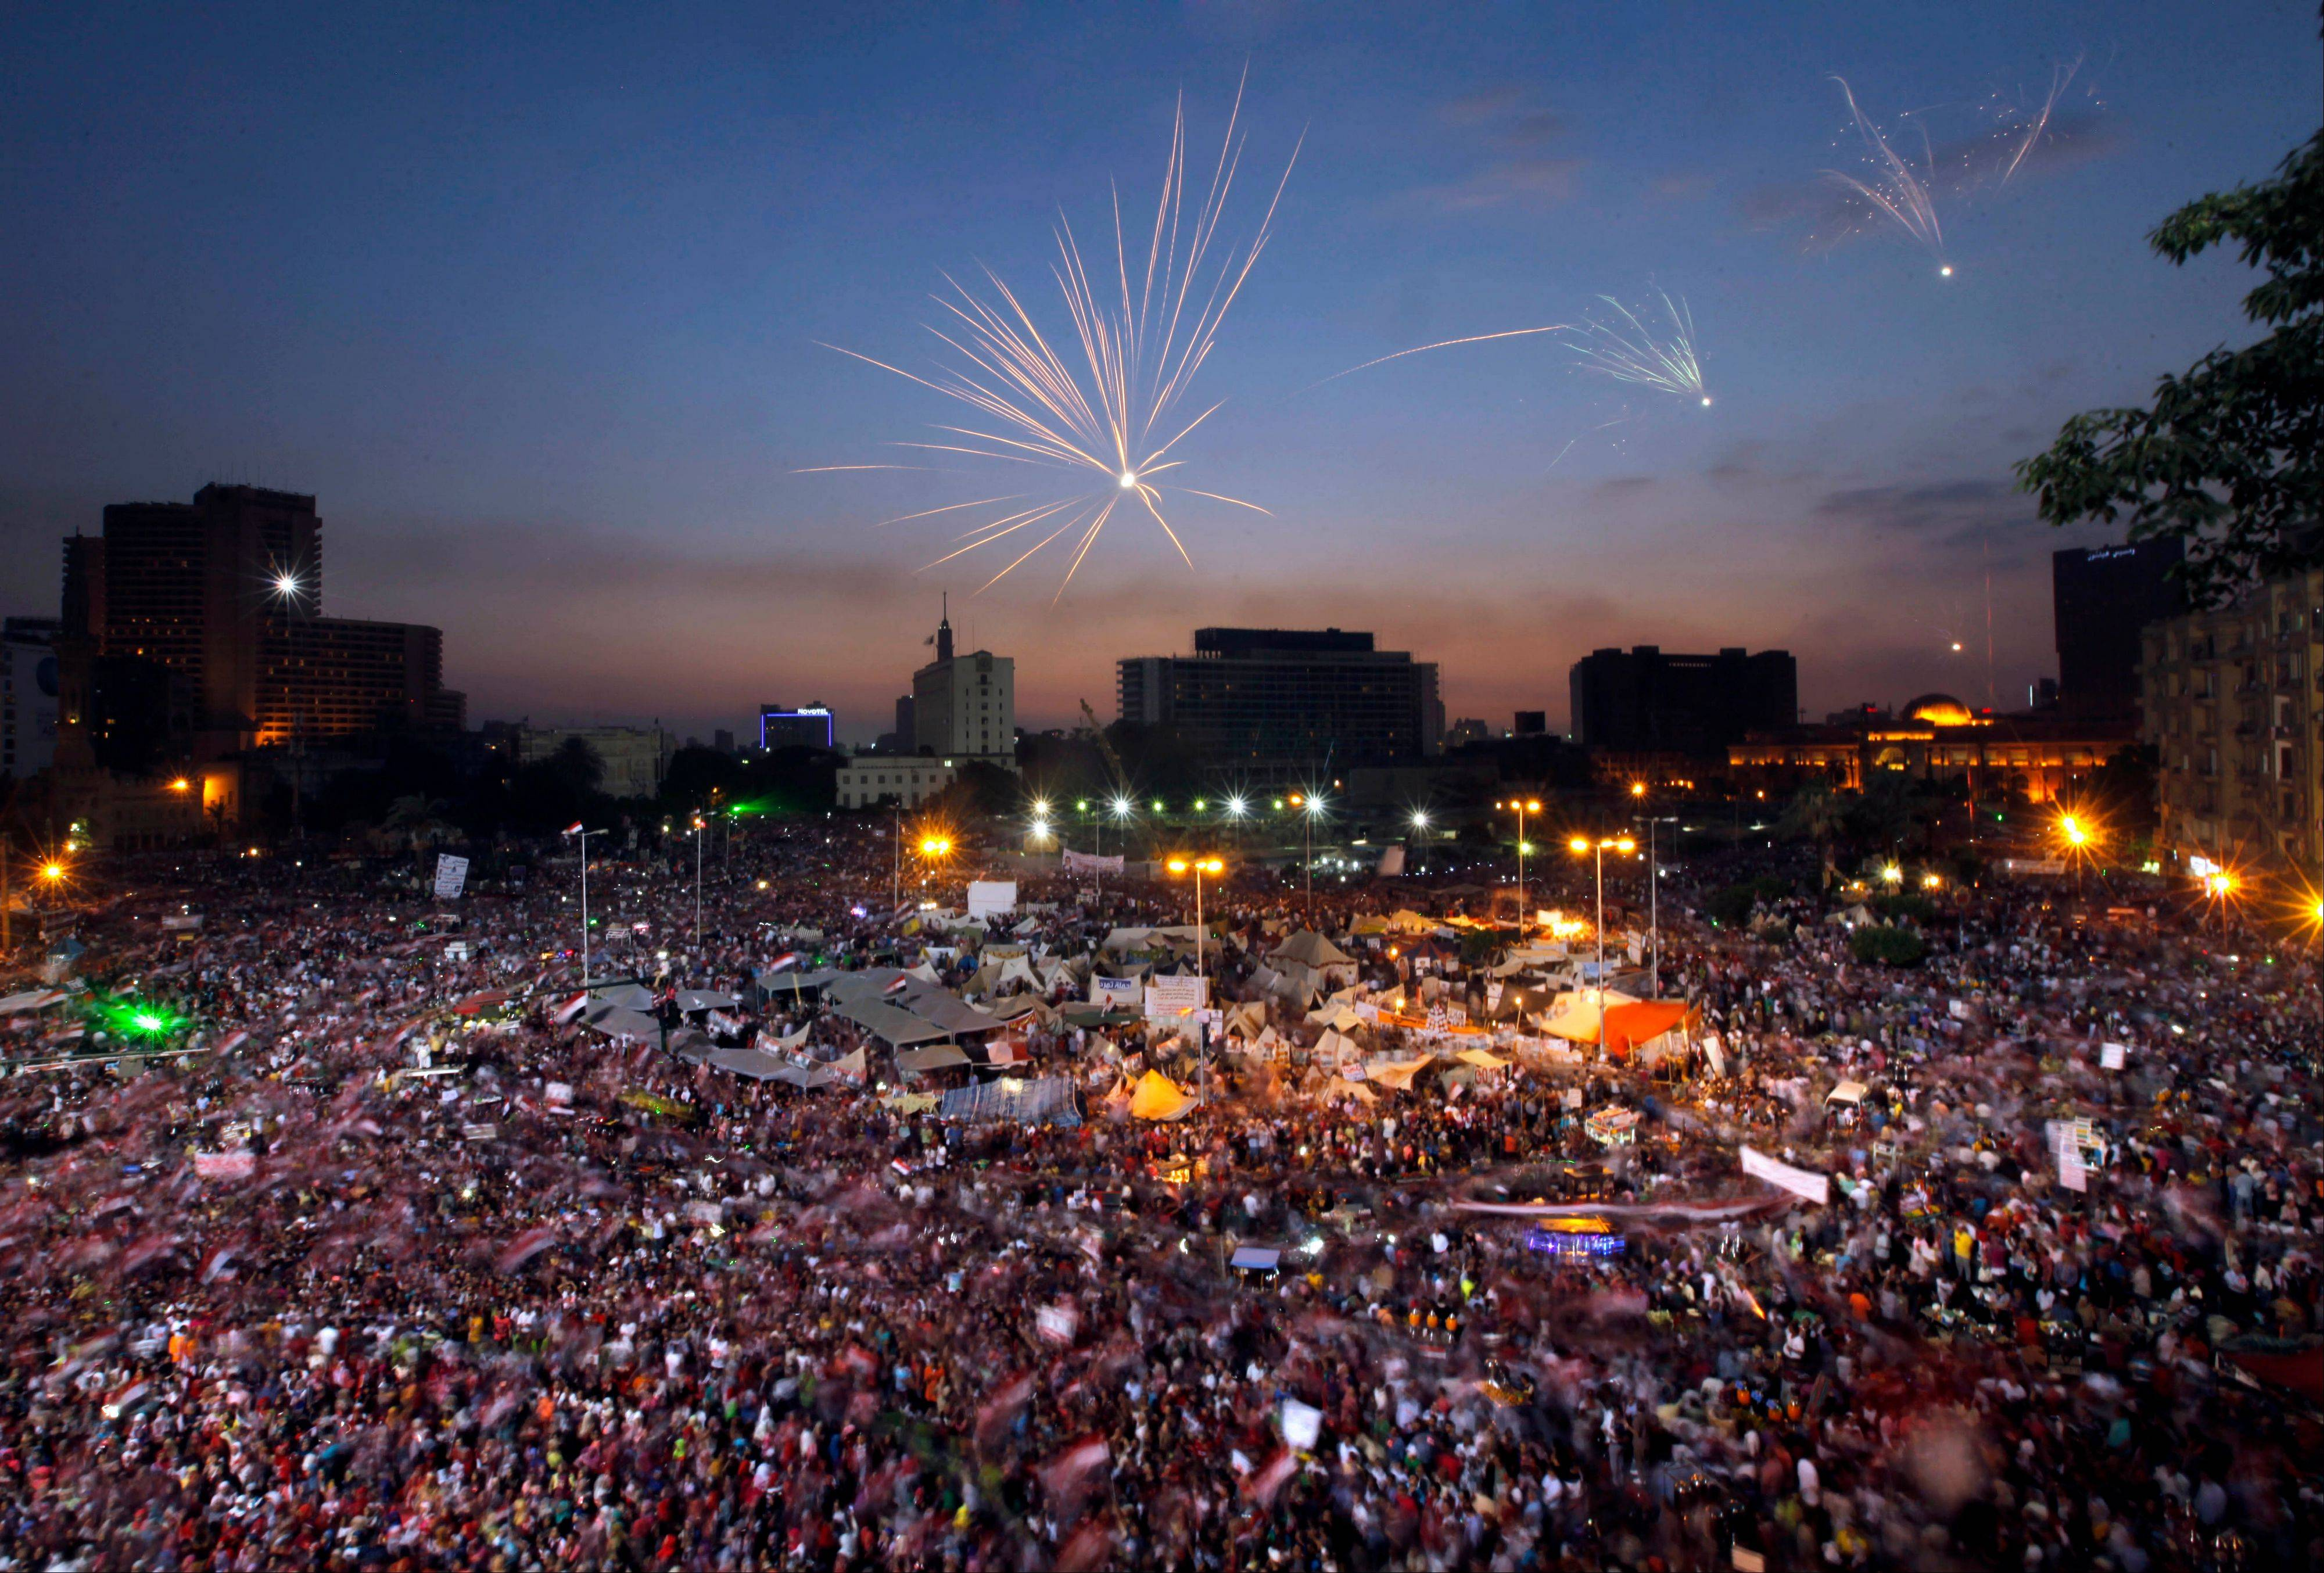 Fireworks burst over opponents of Egypt's Islamist President Mohammed Morsi in Tahrir Square in Cairo, Egypt, Tuesday. With a military deadline for intervention ticking down, protesters seeking the ouster of Egypt's Islamist president sought Tuesday to push the embattled leader further toward the edge with another massive display of people power.